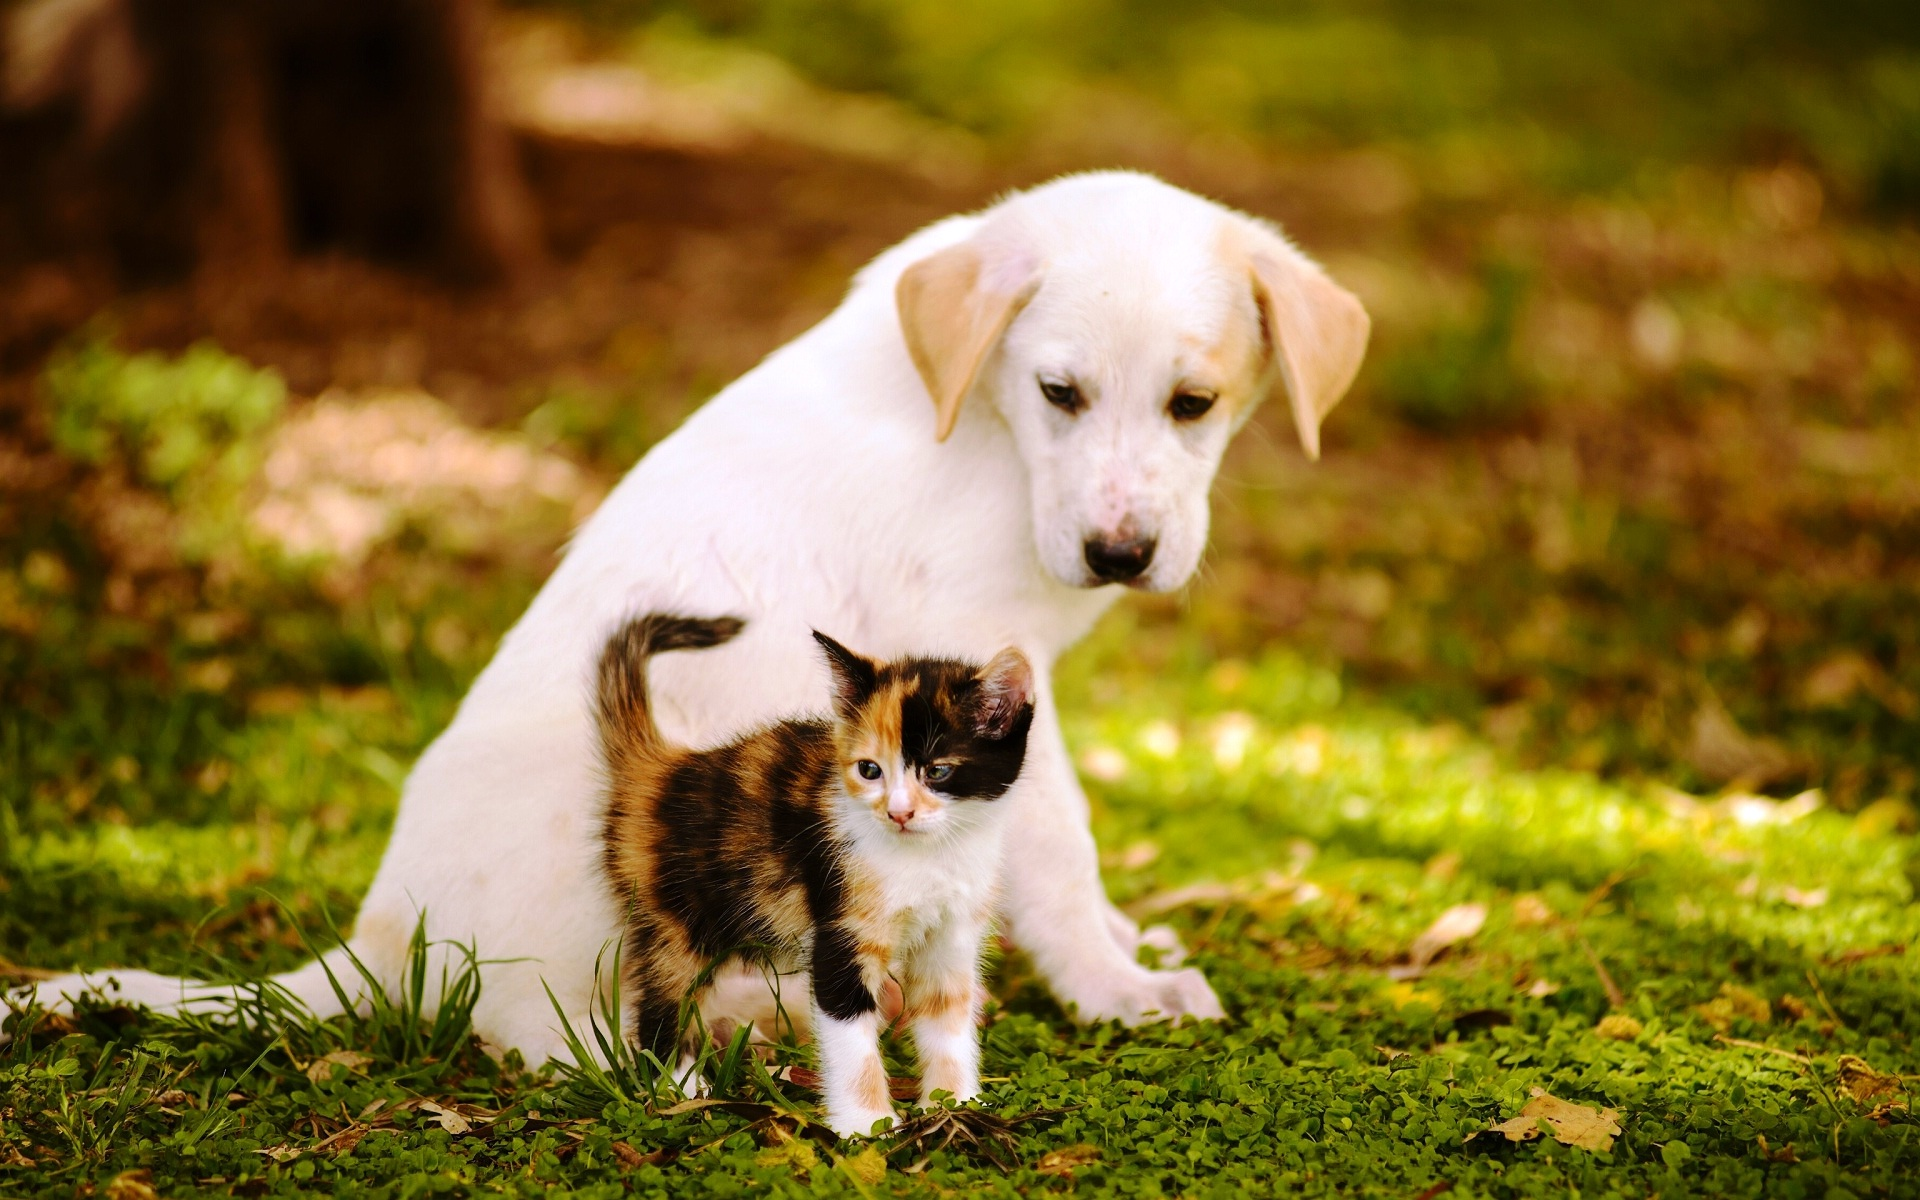 Cute Pictures Of Baby Cats And Dogs